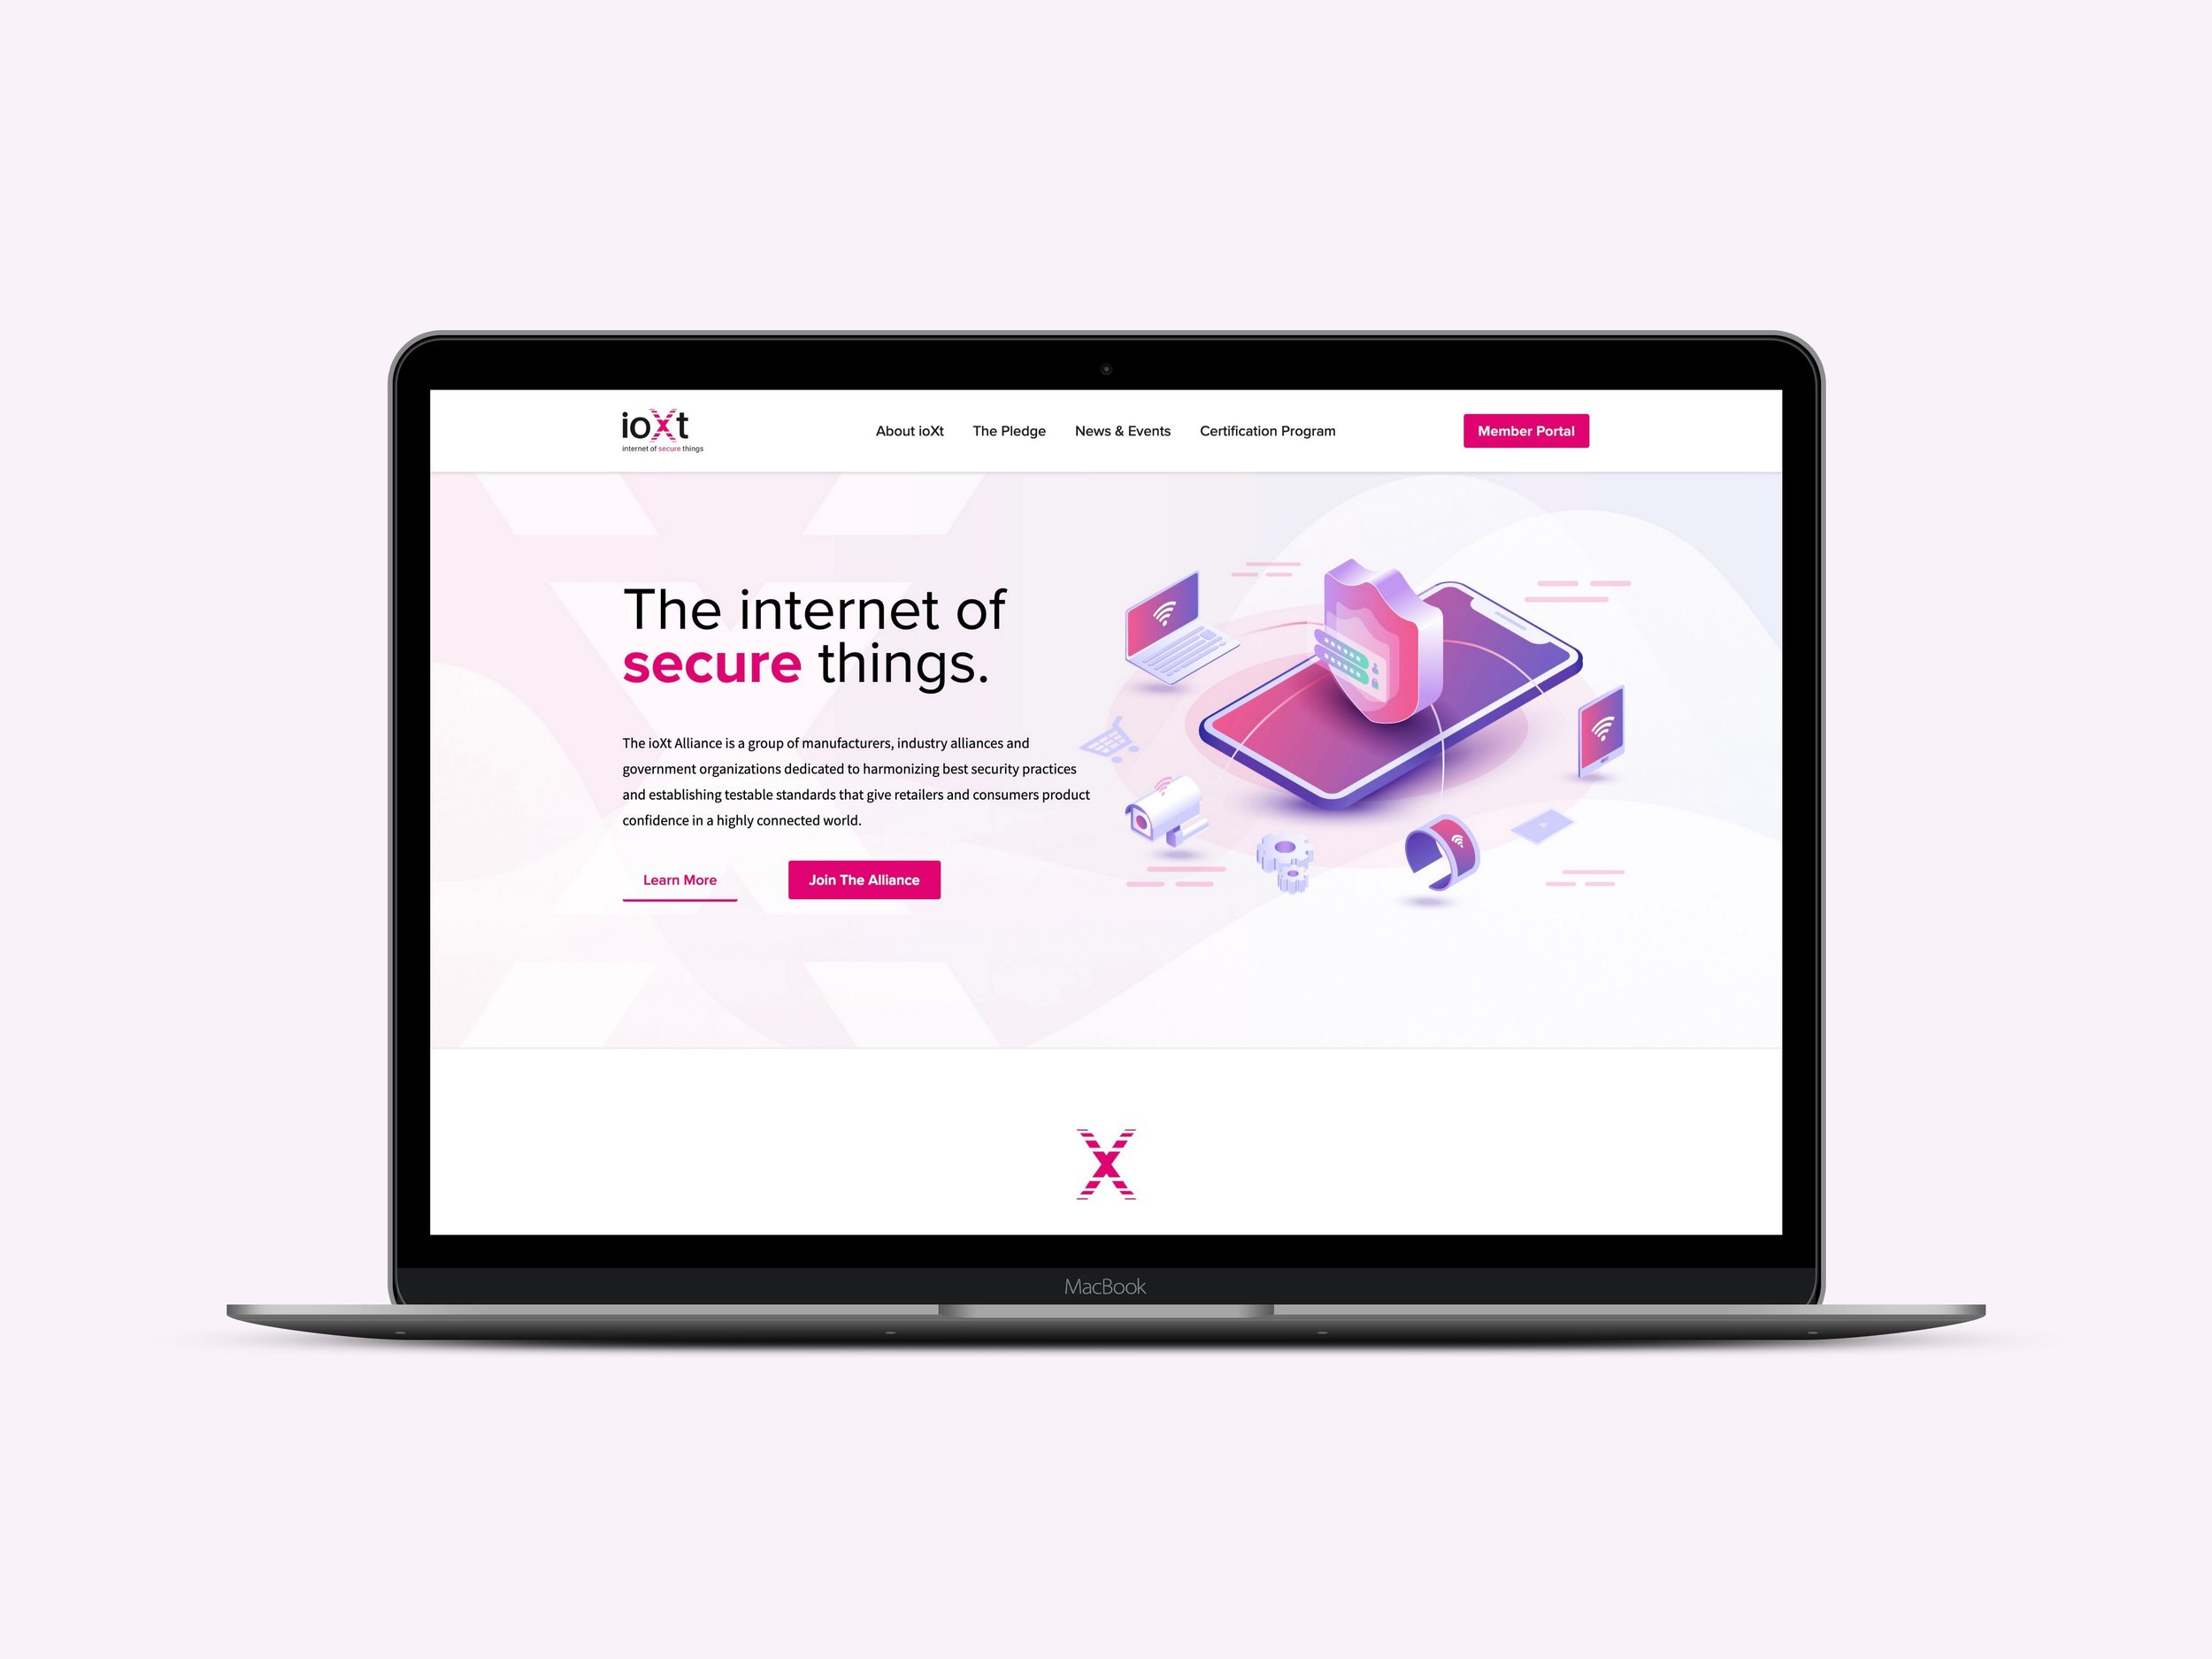 "ioXt Alliance - The ioXt Alliance is a group of companies that has come together to make safer and more secure ""internet of things."" This website includes custom illustrations we created to help communicate and support their messaging and copy."